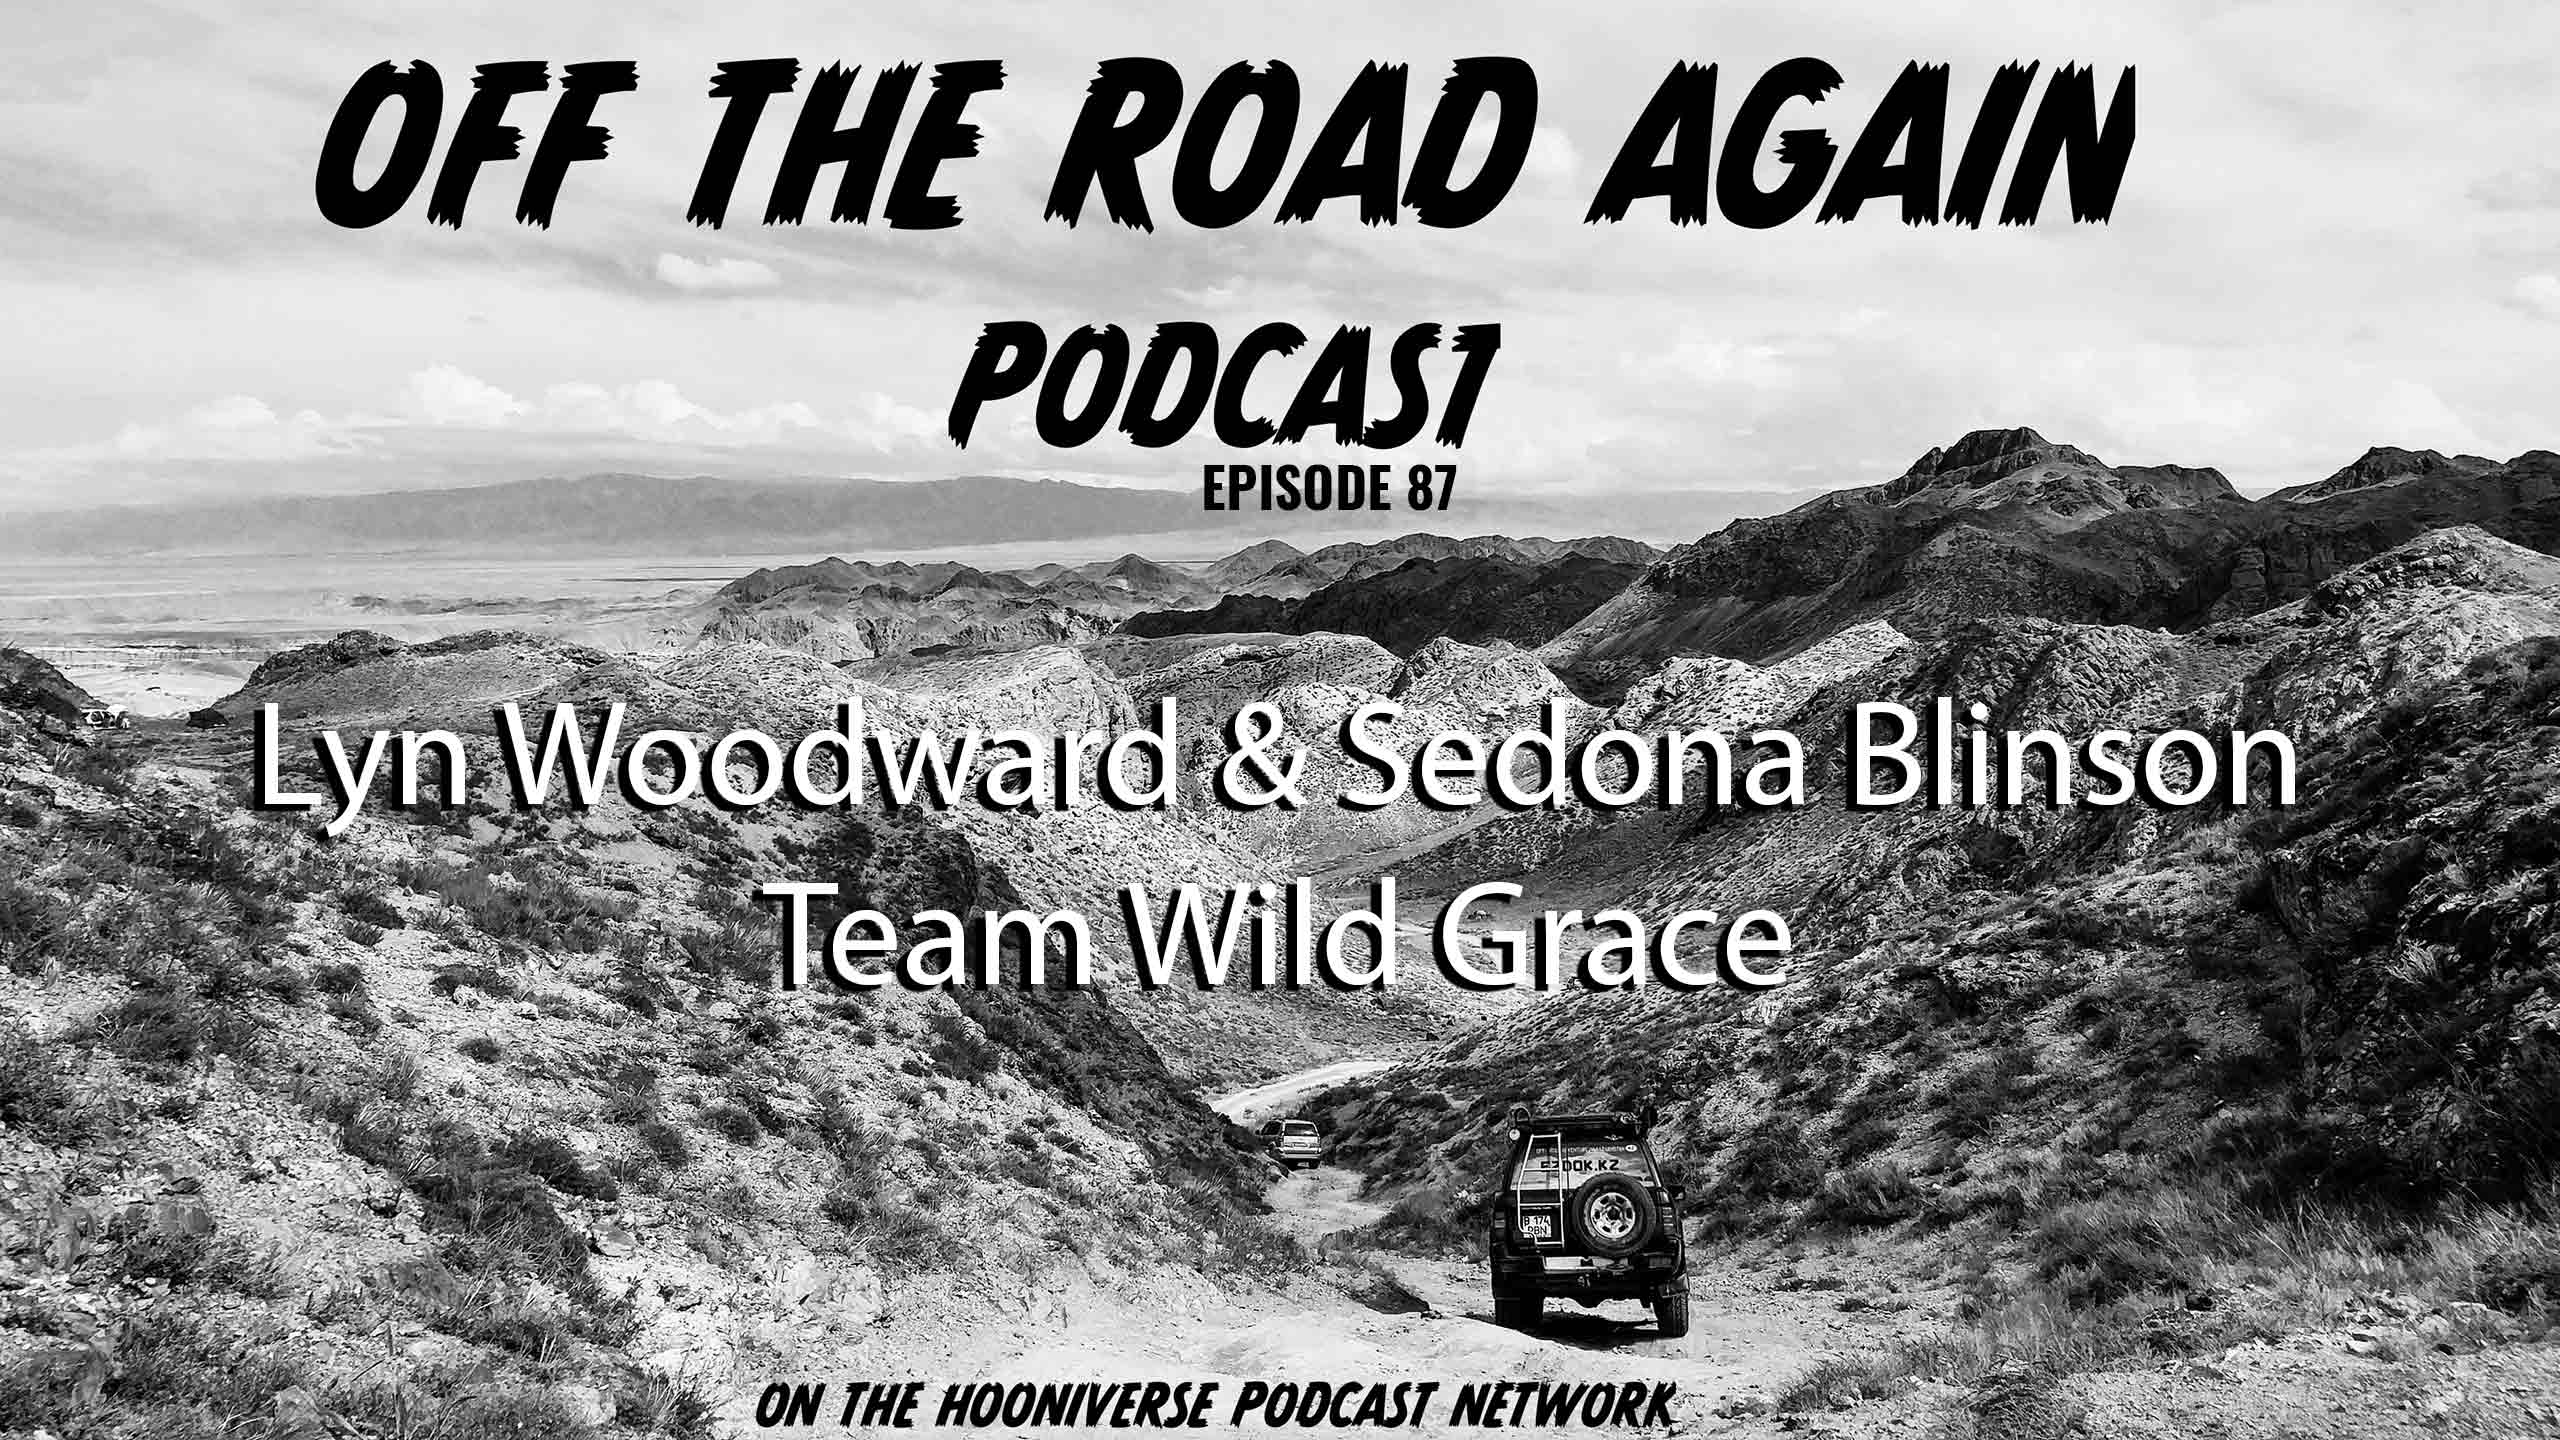 Lyn-Woodward-Sedona-Blinson-Off-The-Road-Again-Podcast-Episode-87